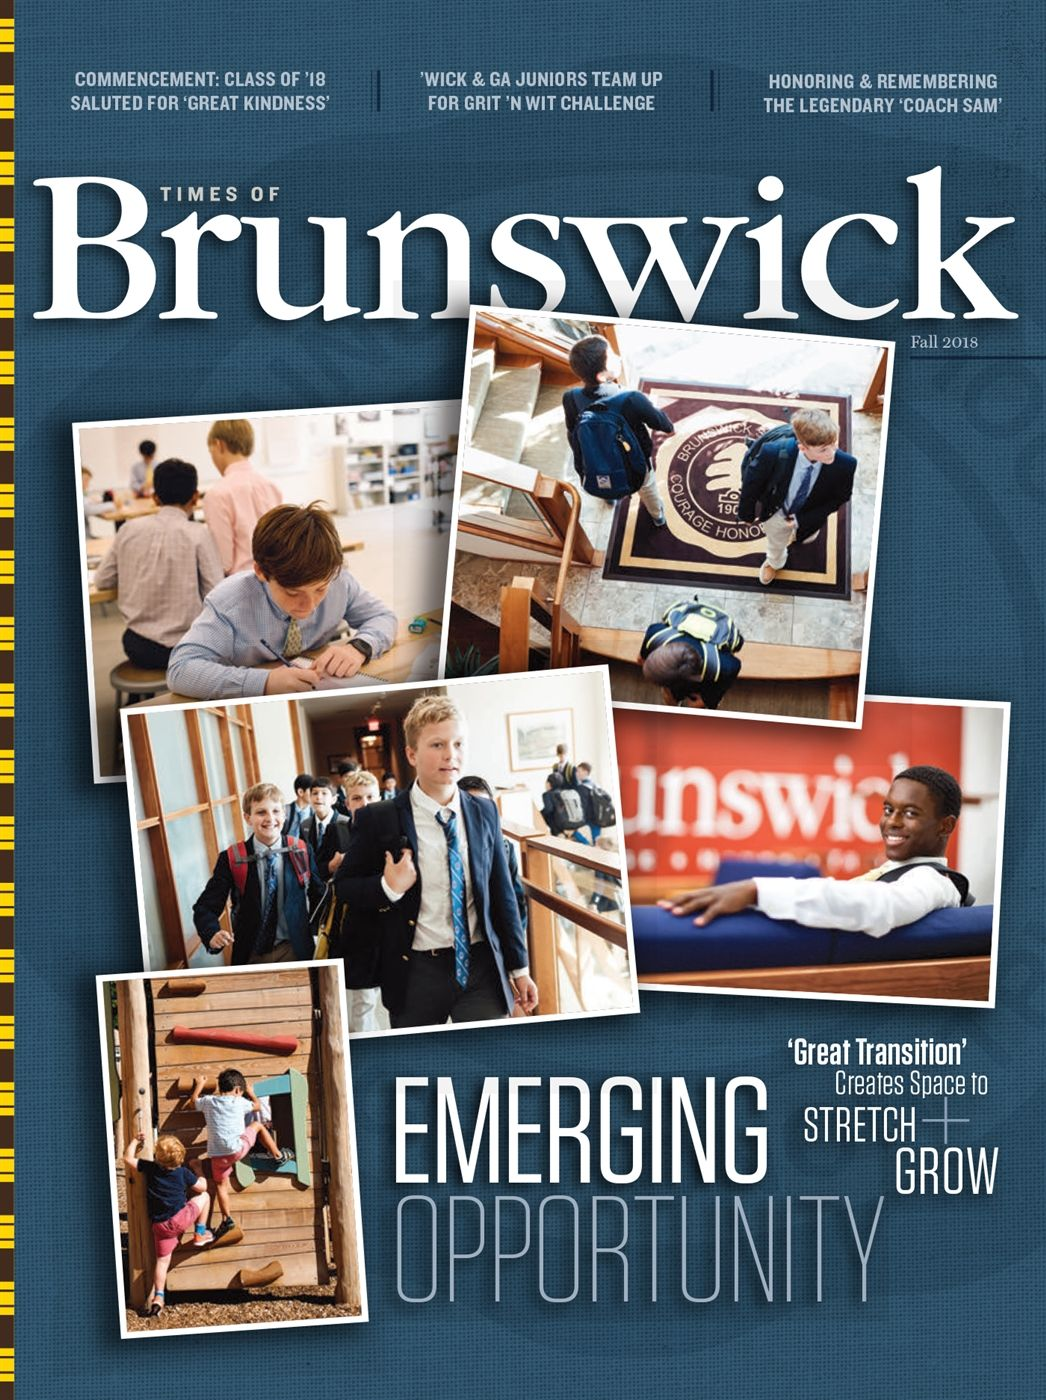 Times of Brunswick, Fall 2018